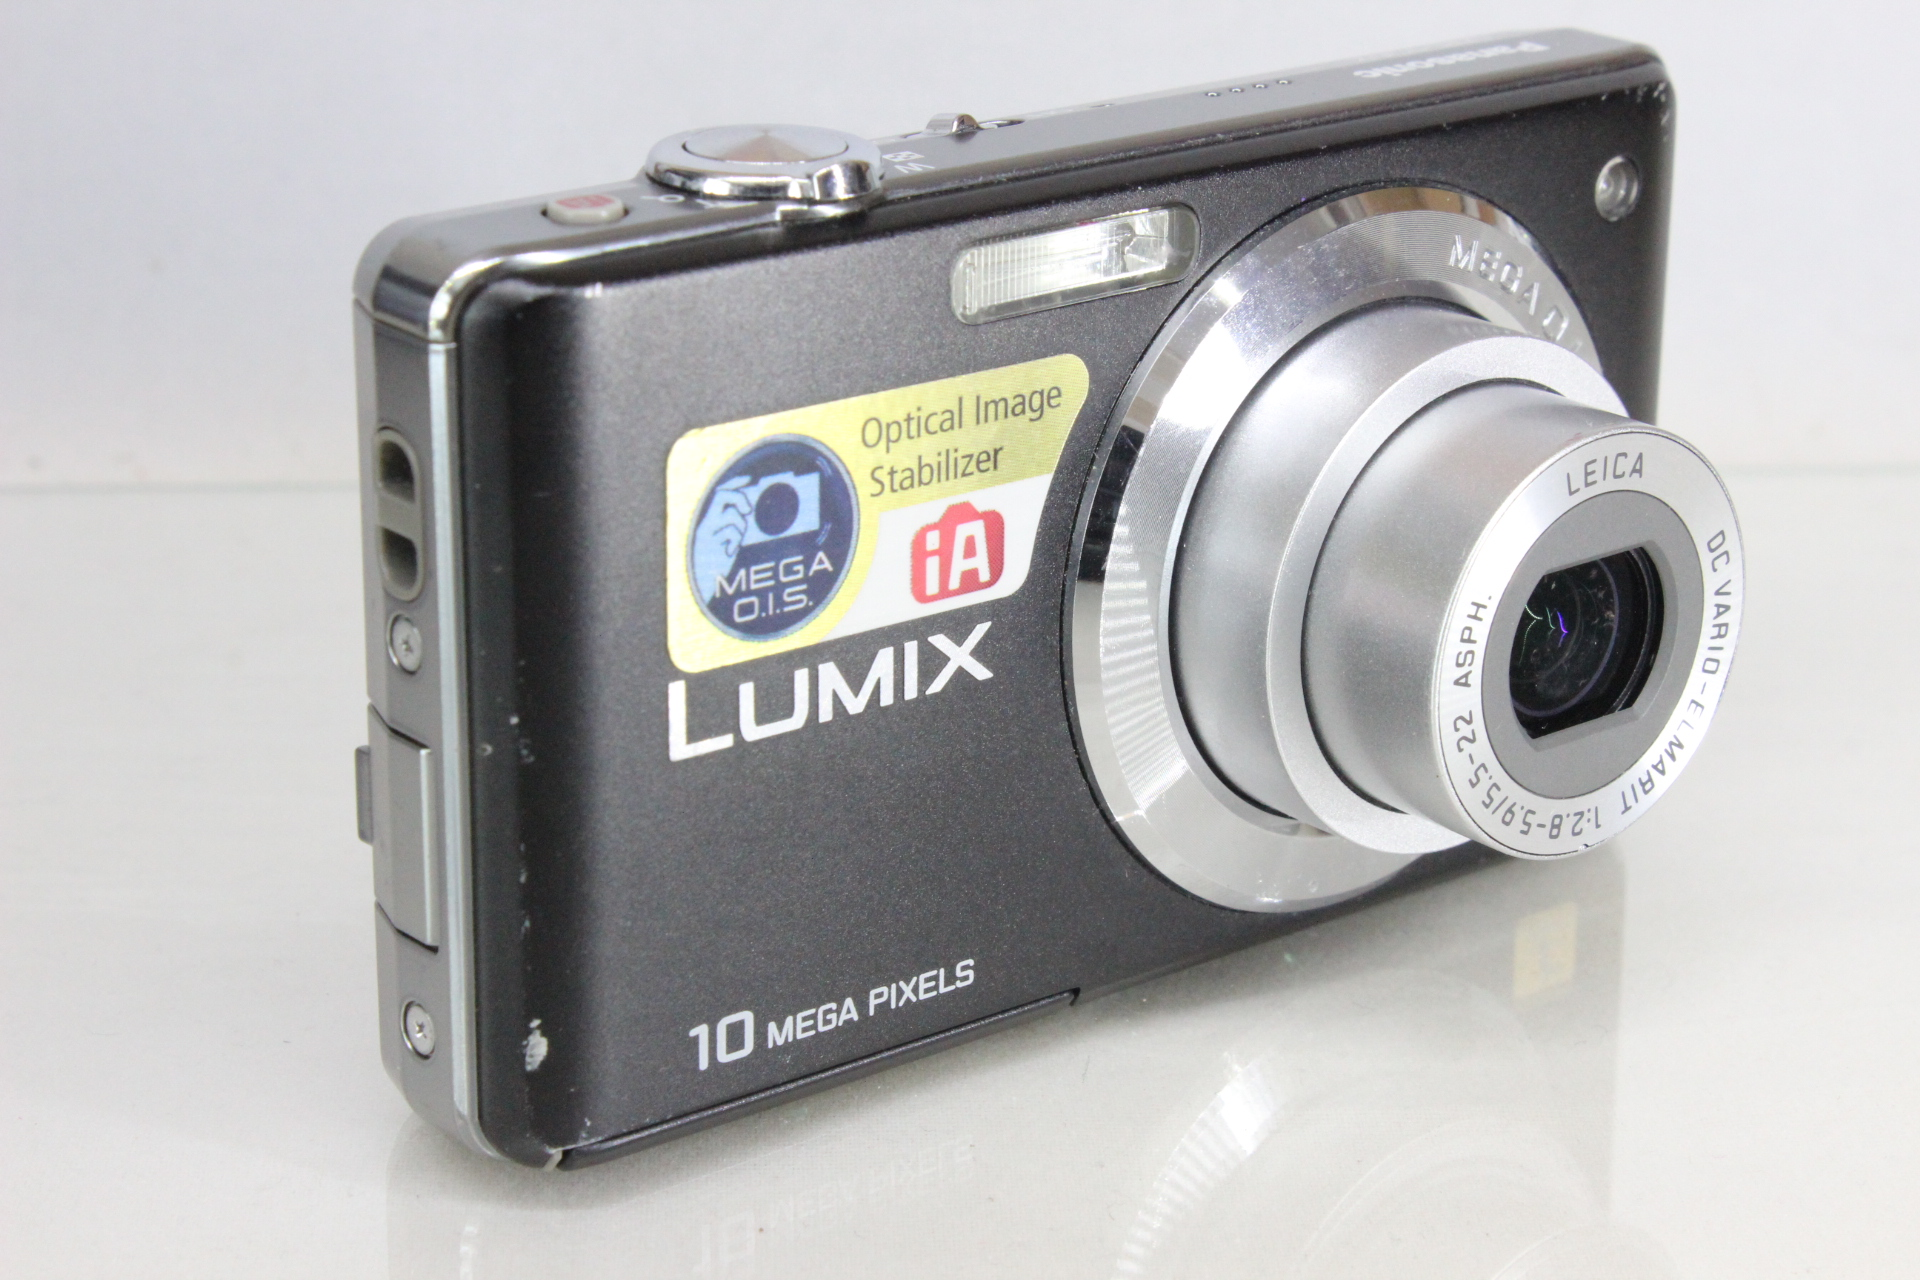 panasonic lumix dmc fs62 10mp 4x optical zoom 2 5 inch lcd rh photocapital studiohousepro com Lumix DMC TS3 Panasonic Lumix DMC LX7